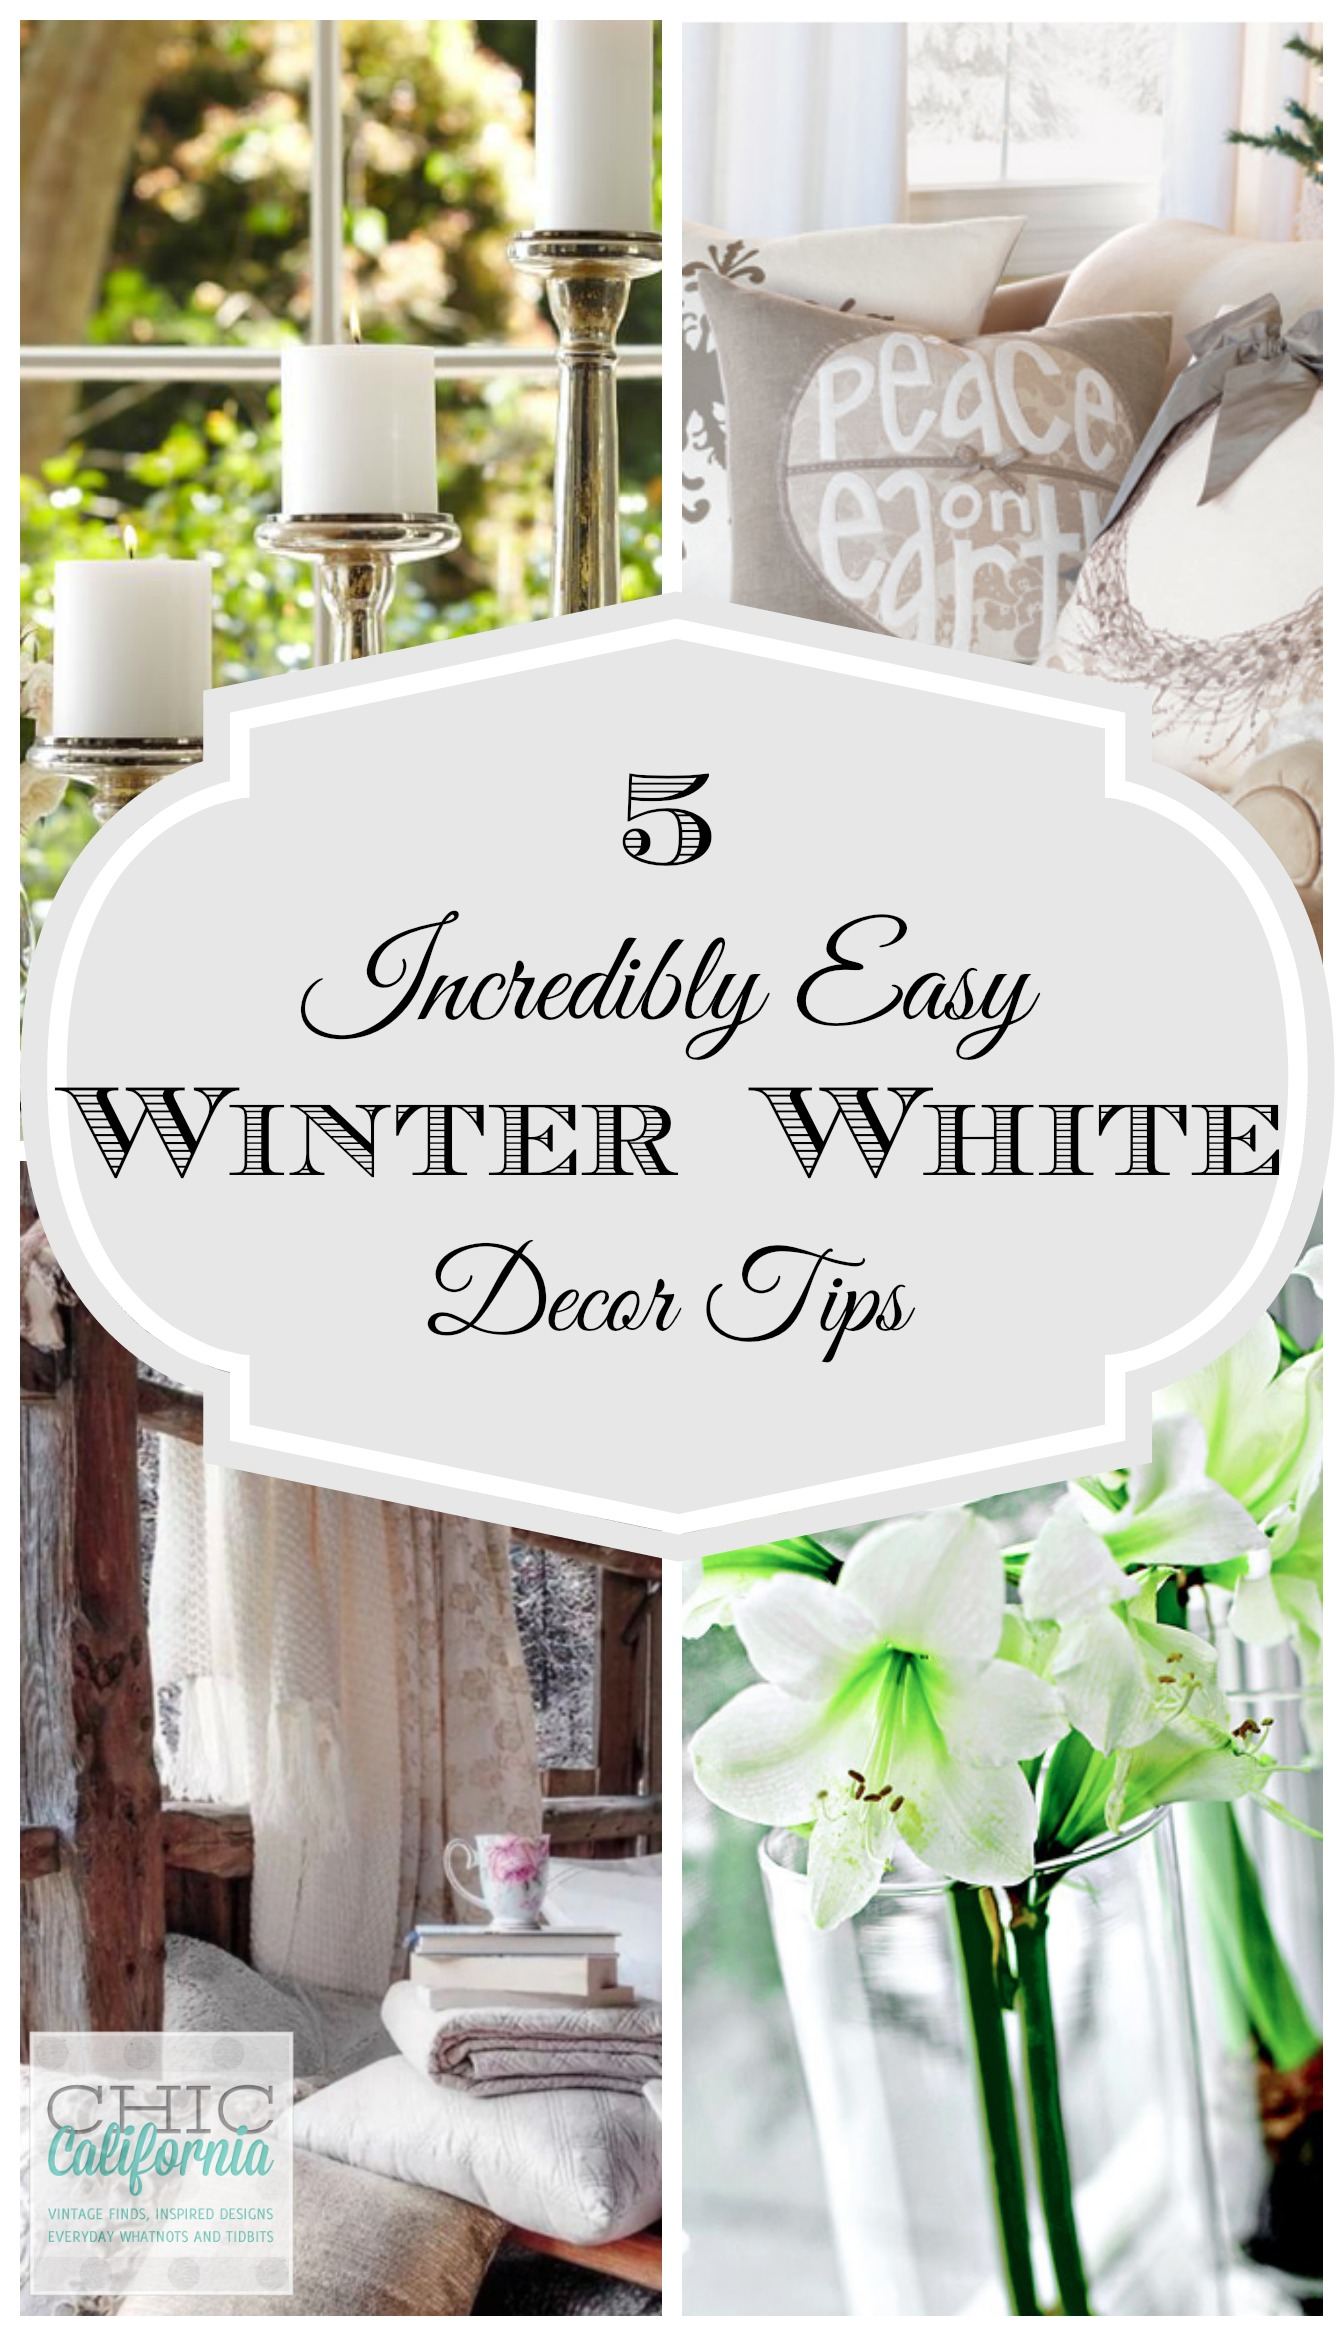 5 Incredibly Easy Winter White Decor Tips. 5 Incredibly Easy Winter White Decor Tips   Chic California